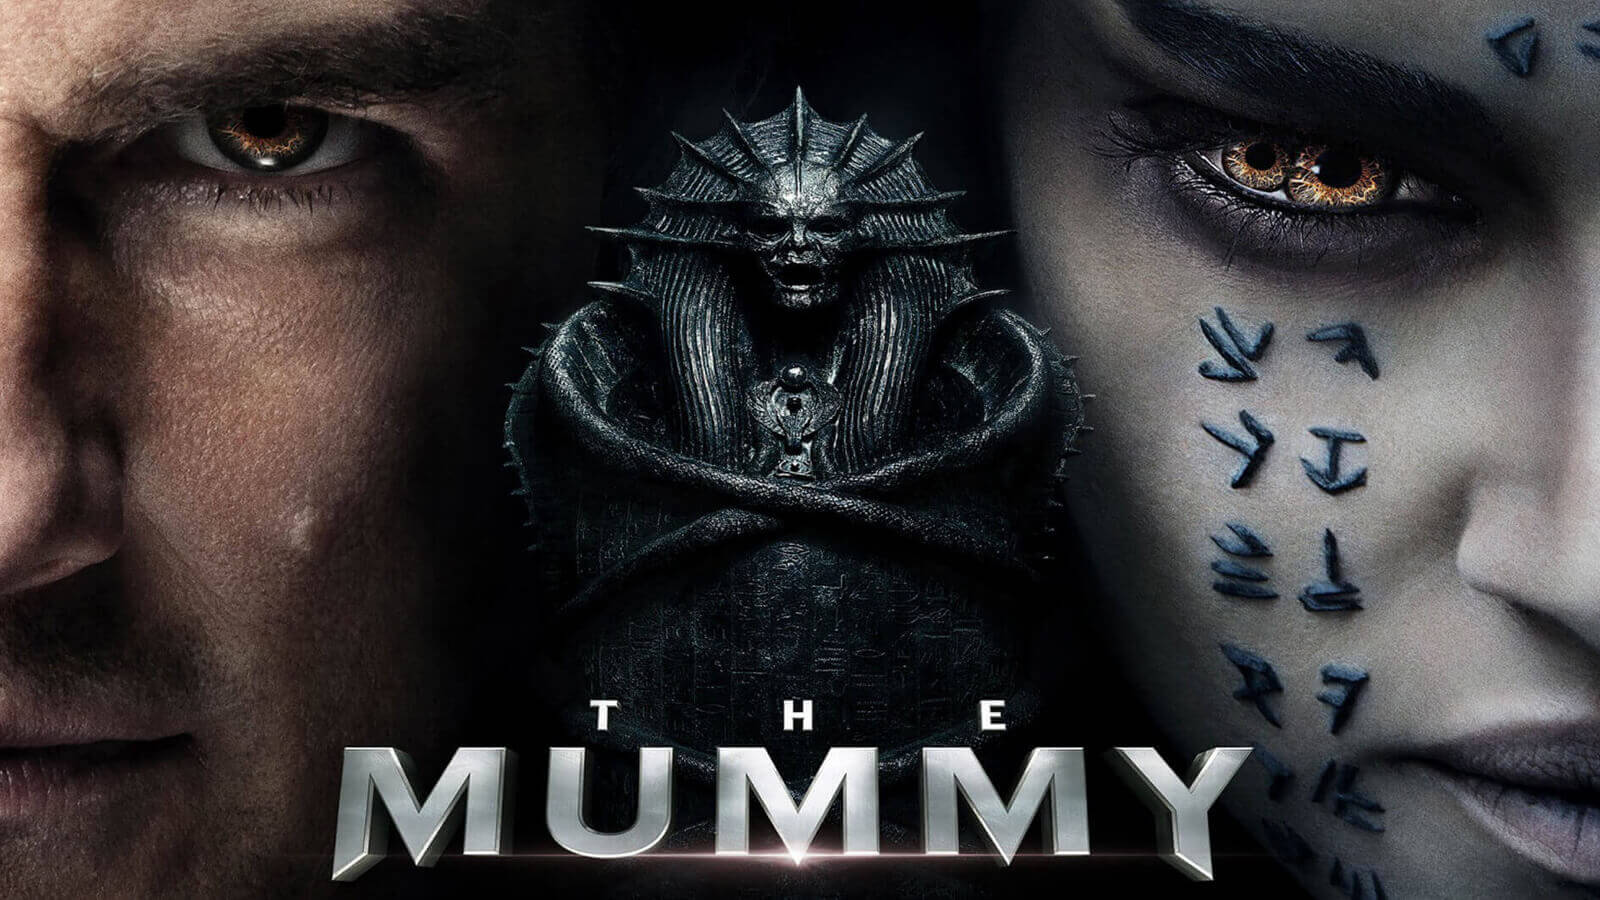 The Mummy 2017 Full Movie Download In Hd Hindi 720p Filmywap